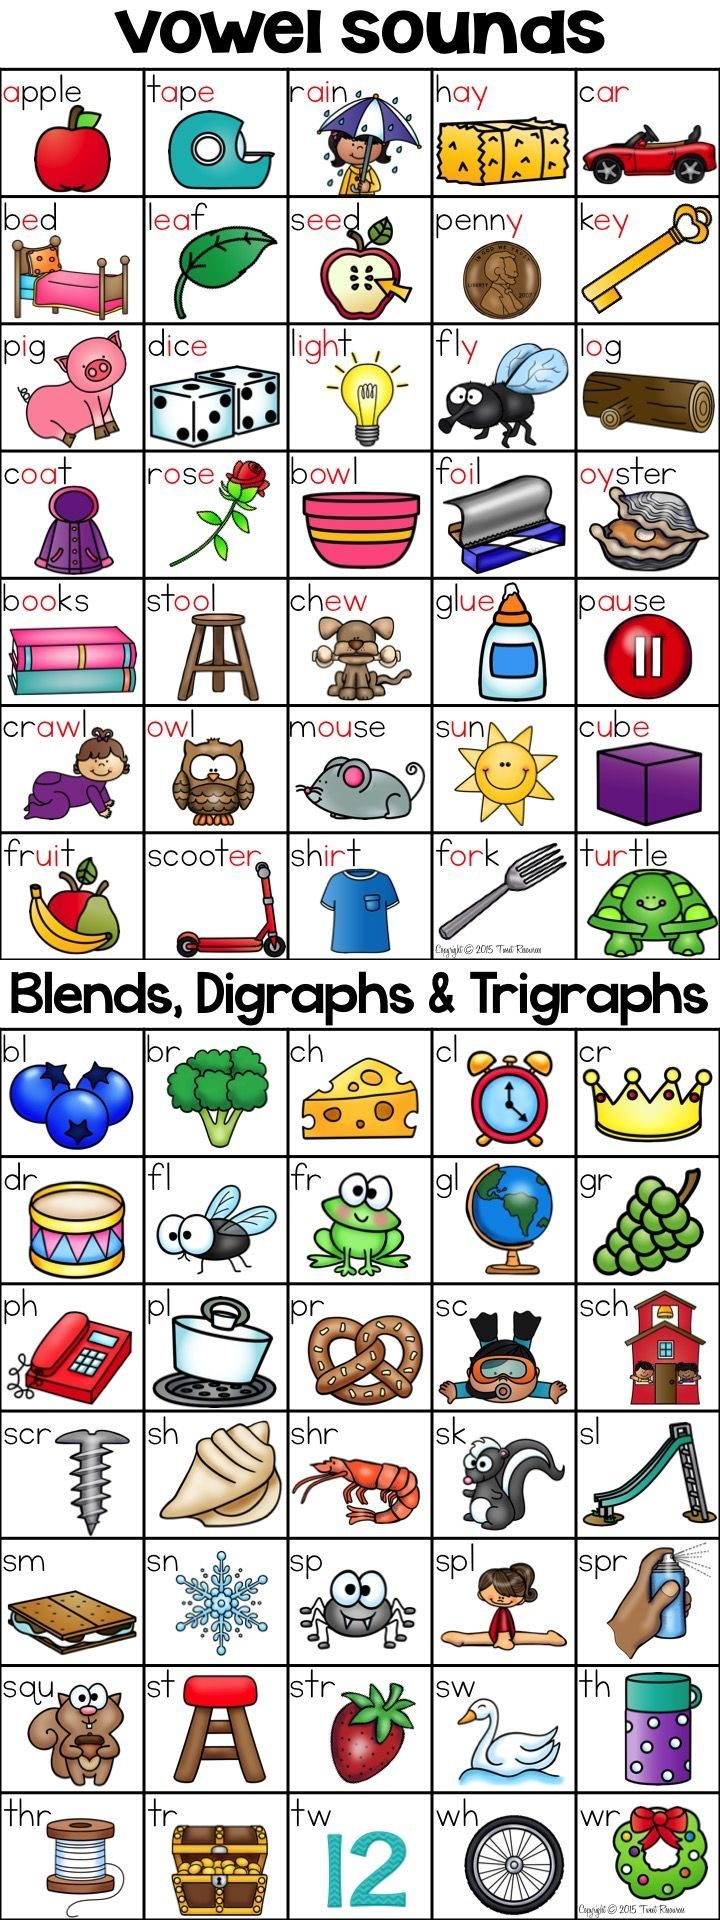 Alphabet, vowel sounds, blends, digraphs, trigraphs charts